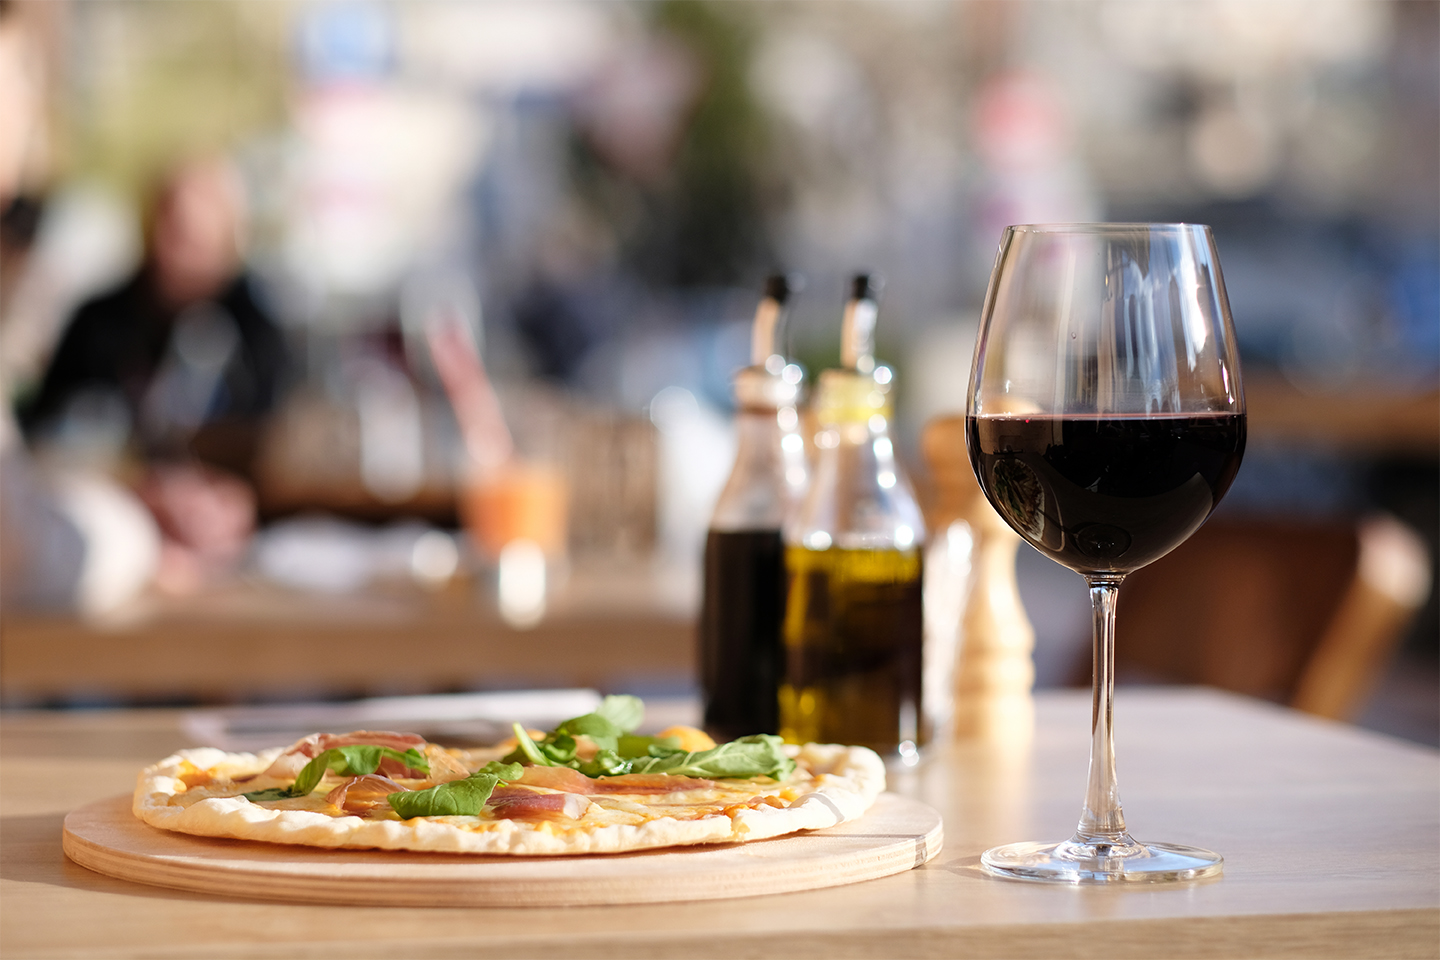 A glass of red wine on a table with a small pizza on a wooden board